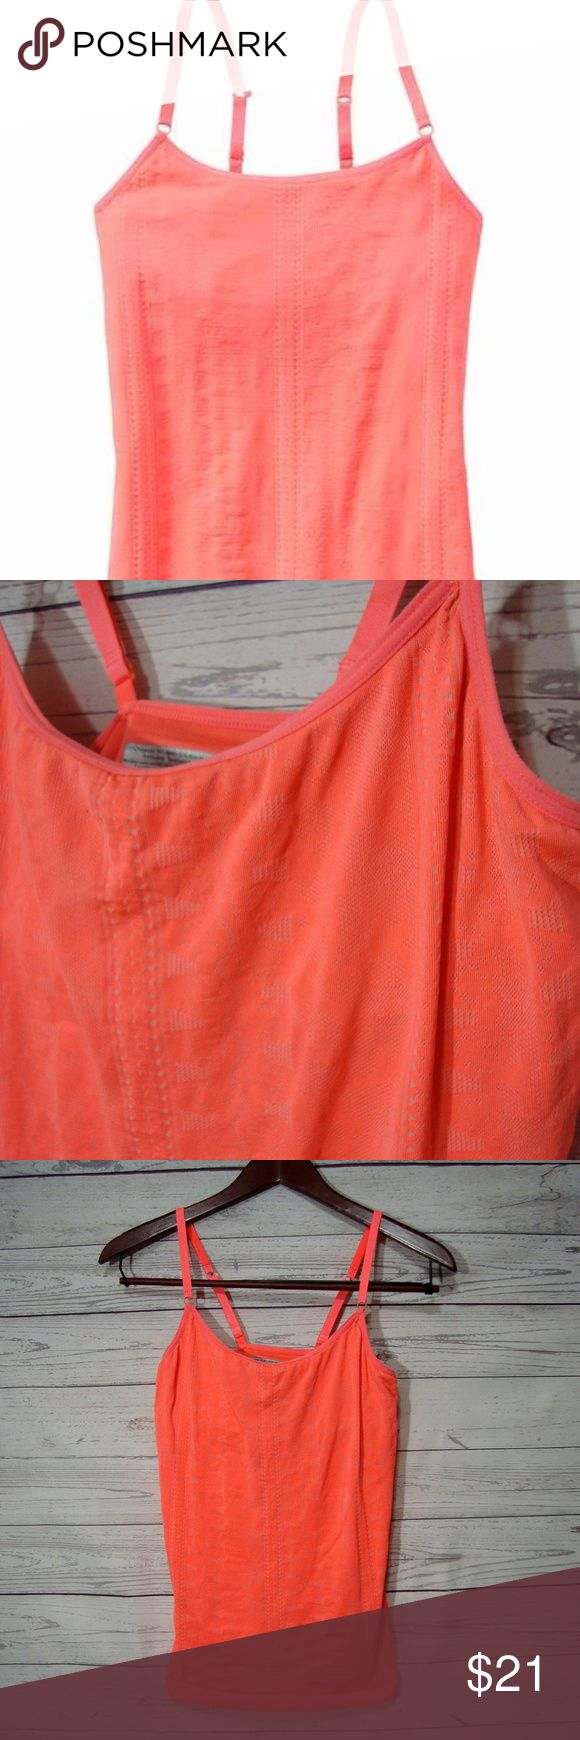 Athleta Free To Breathe Seamless Cami Top Coral From Athleta  Size S  Shelf bra  Color: bright pink/coral color  Gently used  From a smoke free and pet friendly home Athleta Tops Camisoles